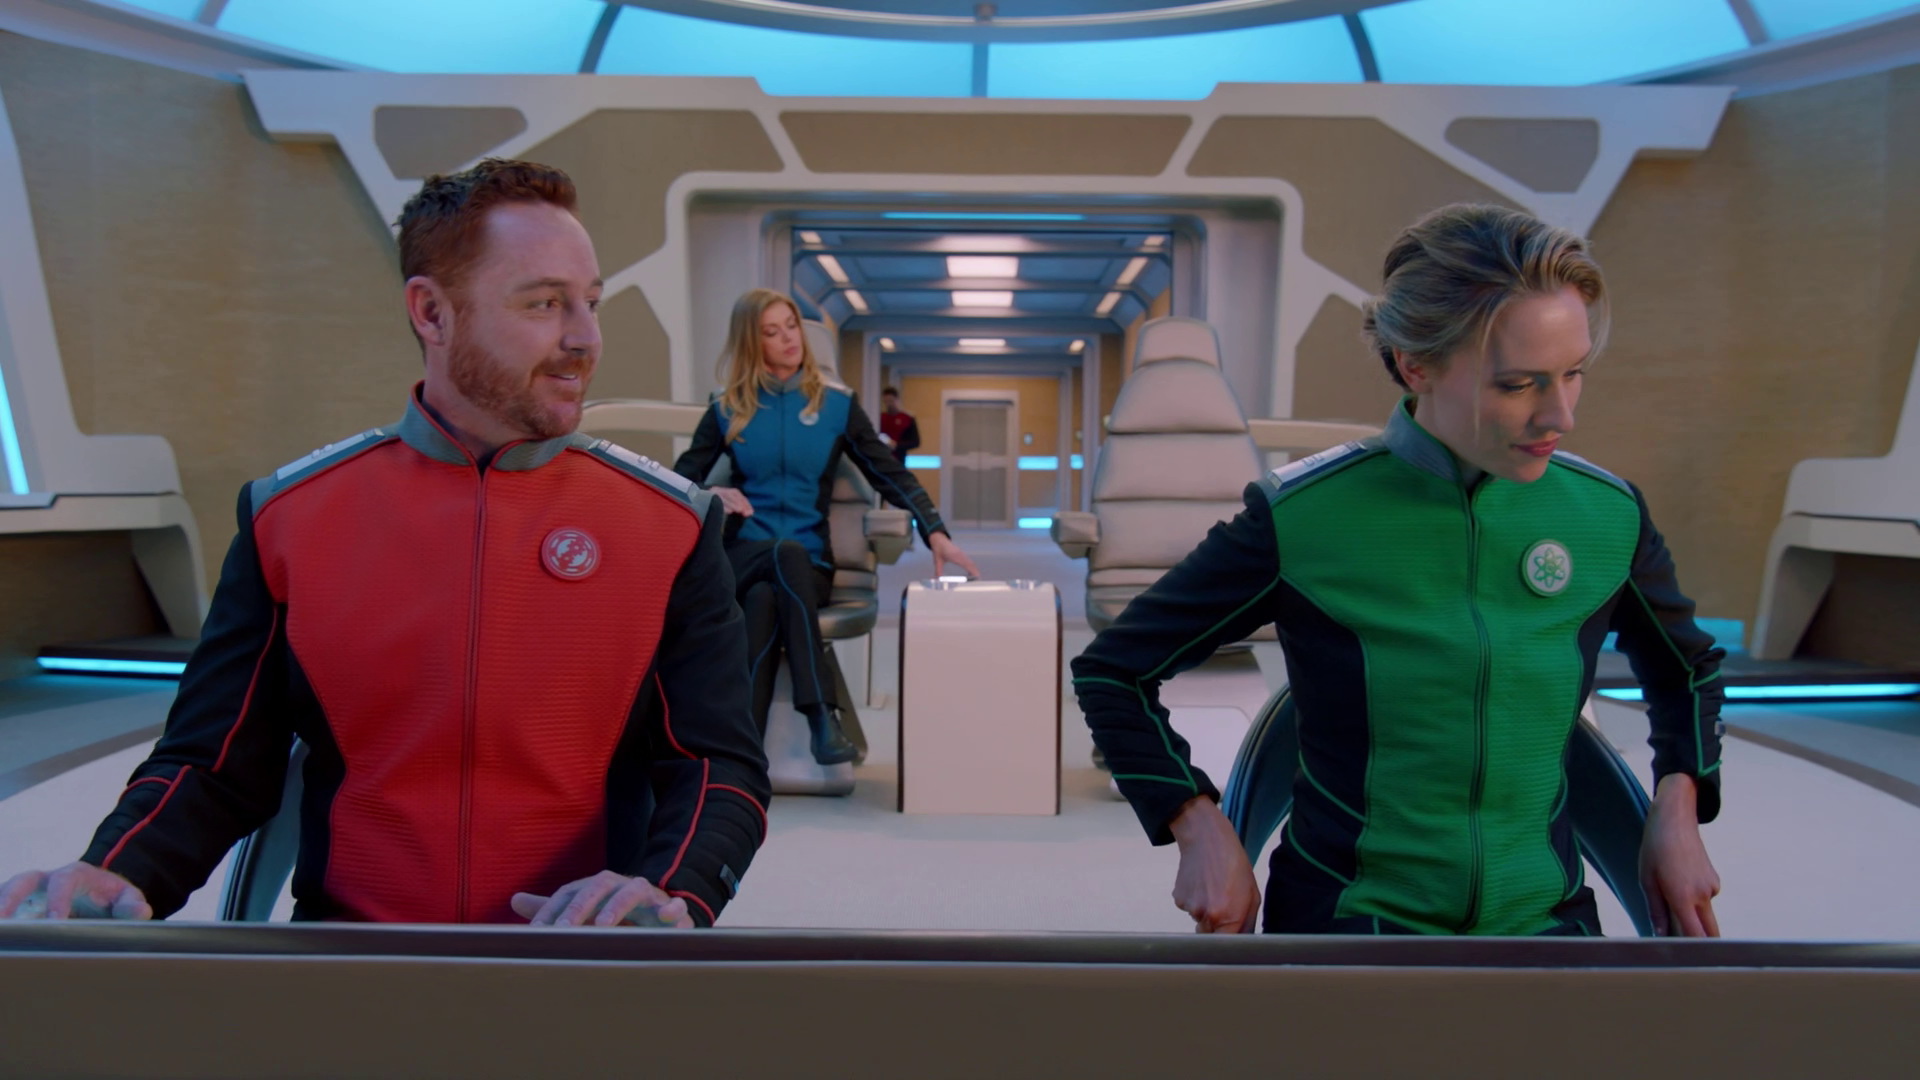 The Orville - Stagione 2 (2019) (Completa) WEB-DLMux 1080P HEVC ITA ENG AC3 x265 mkv Vlcsnap-2019-01-11-191wd2y